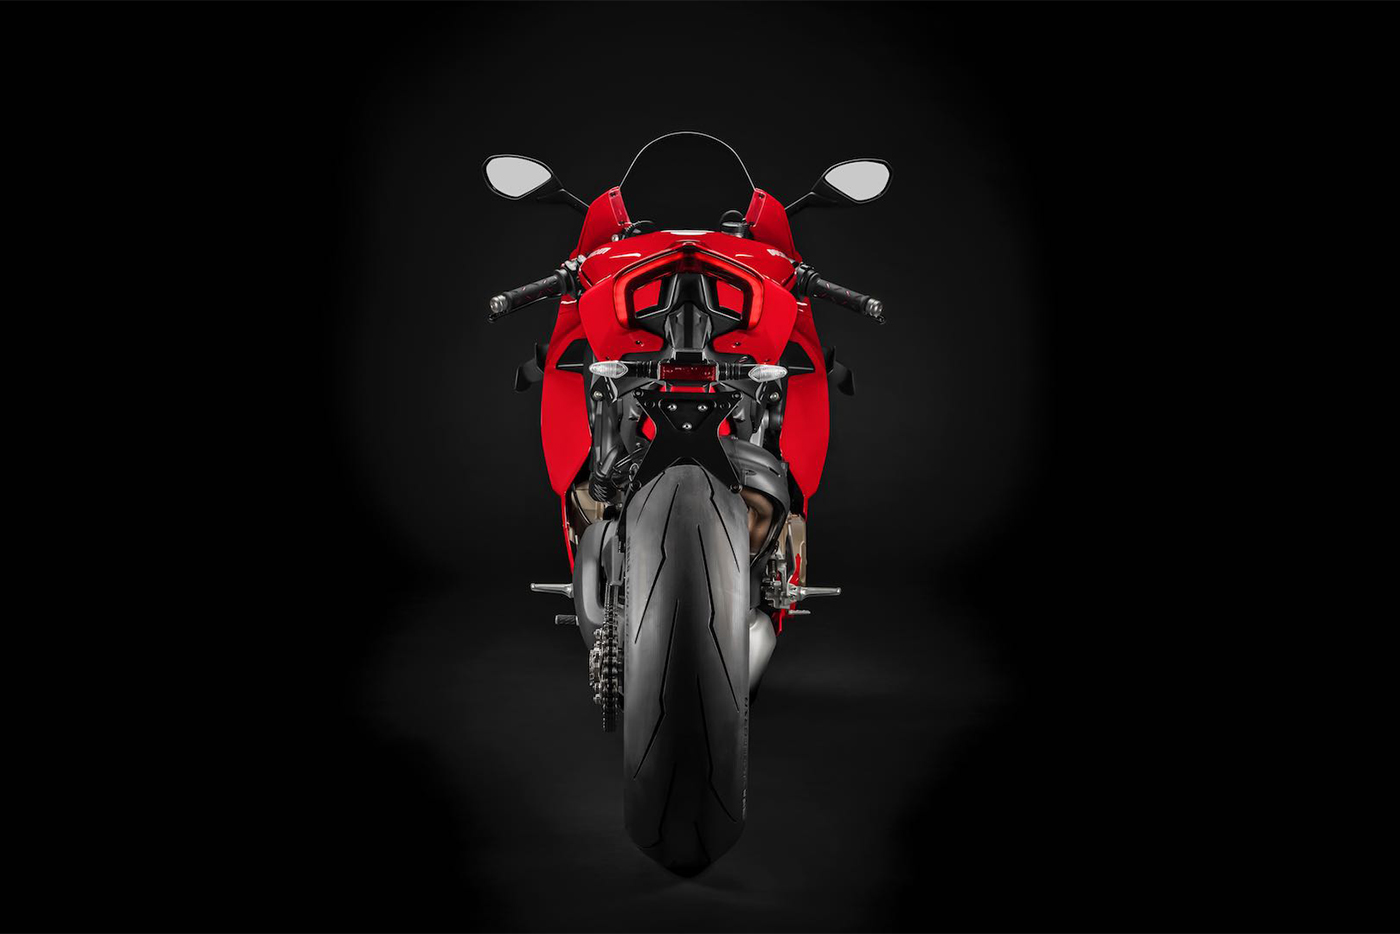 2020-ducati-panigale-v4-first-look-fast-facts-14.jpg